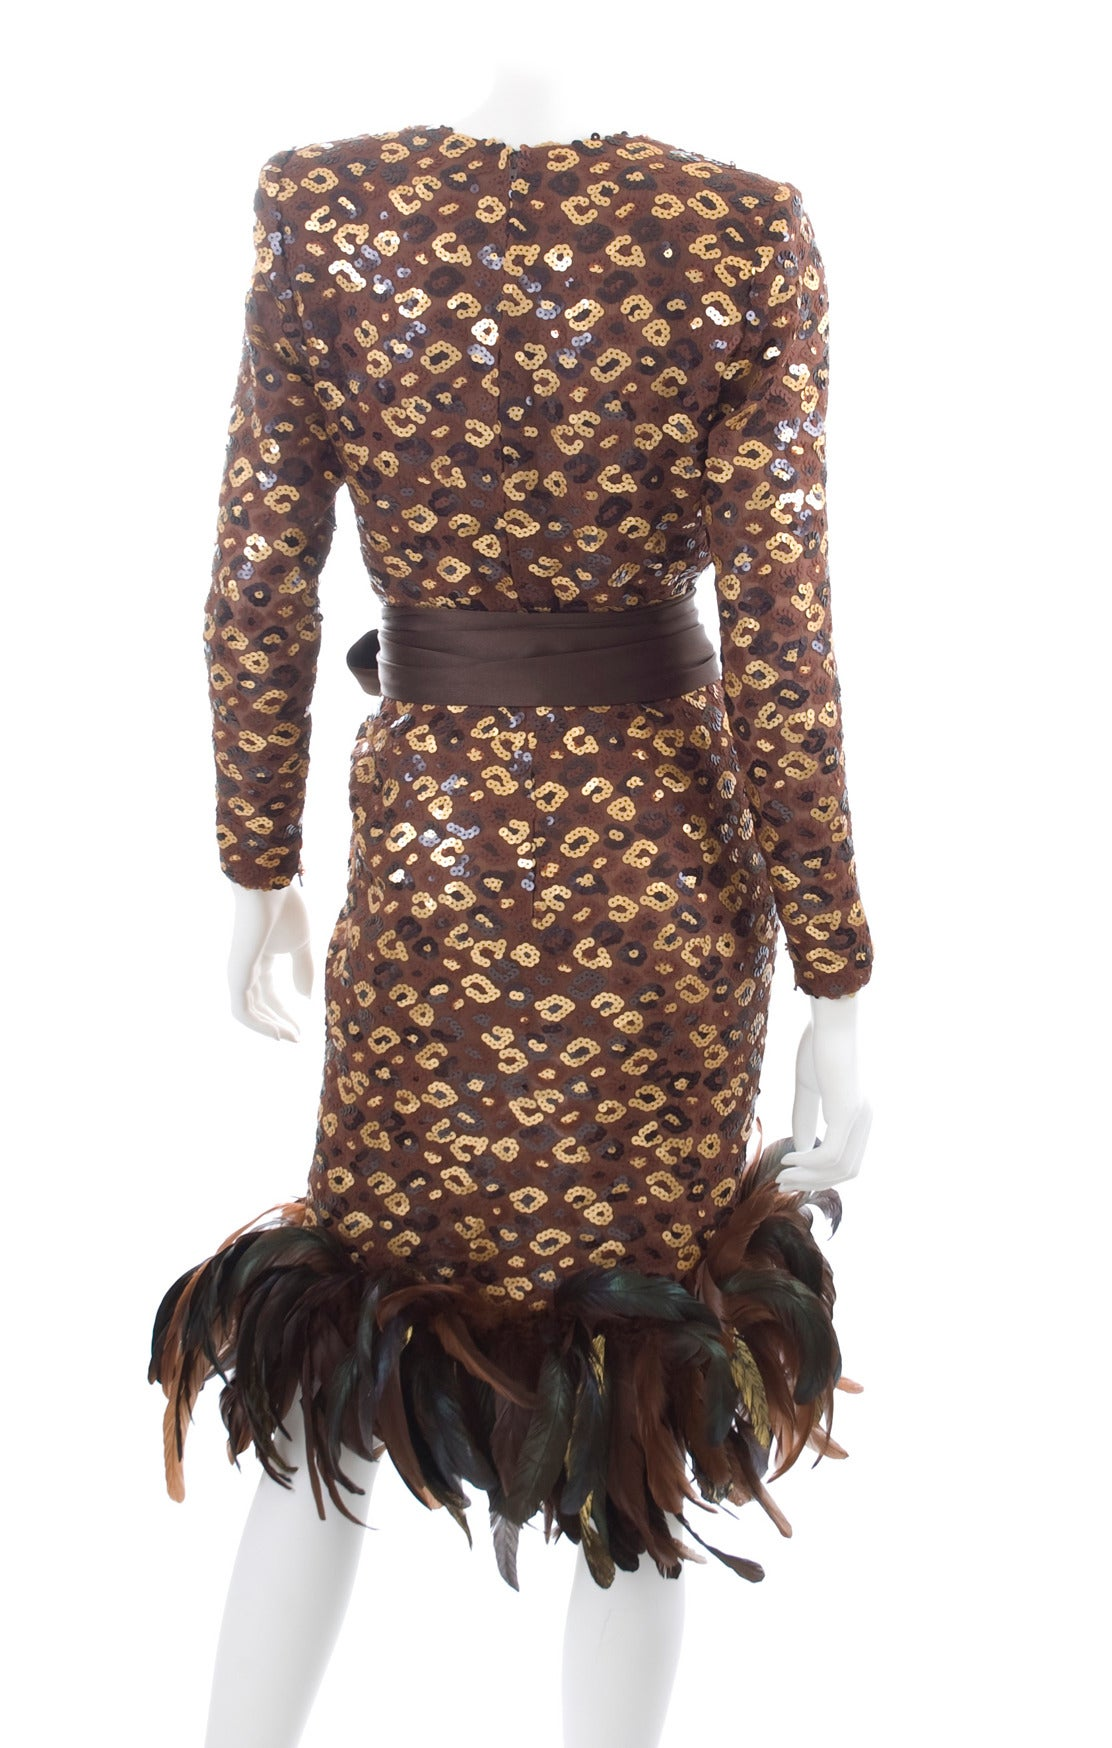 1986 Givenchy Dress with Sequins and Feathers 6